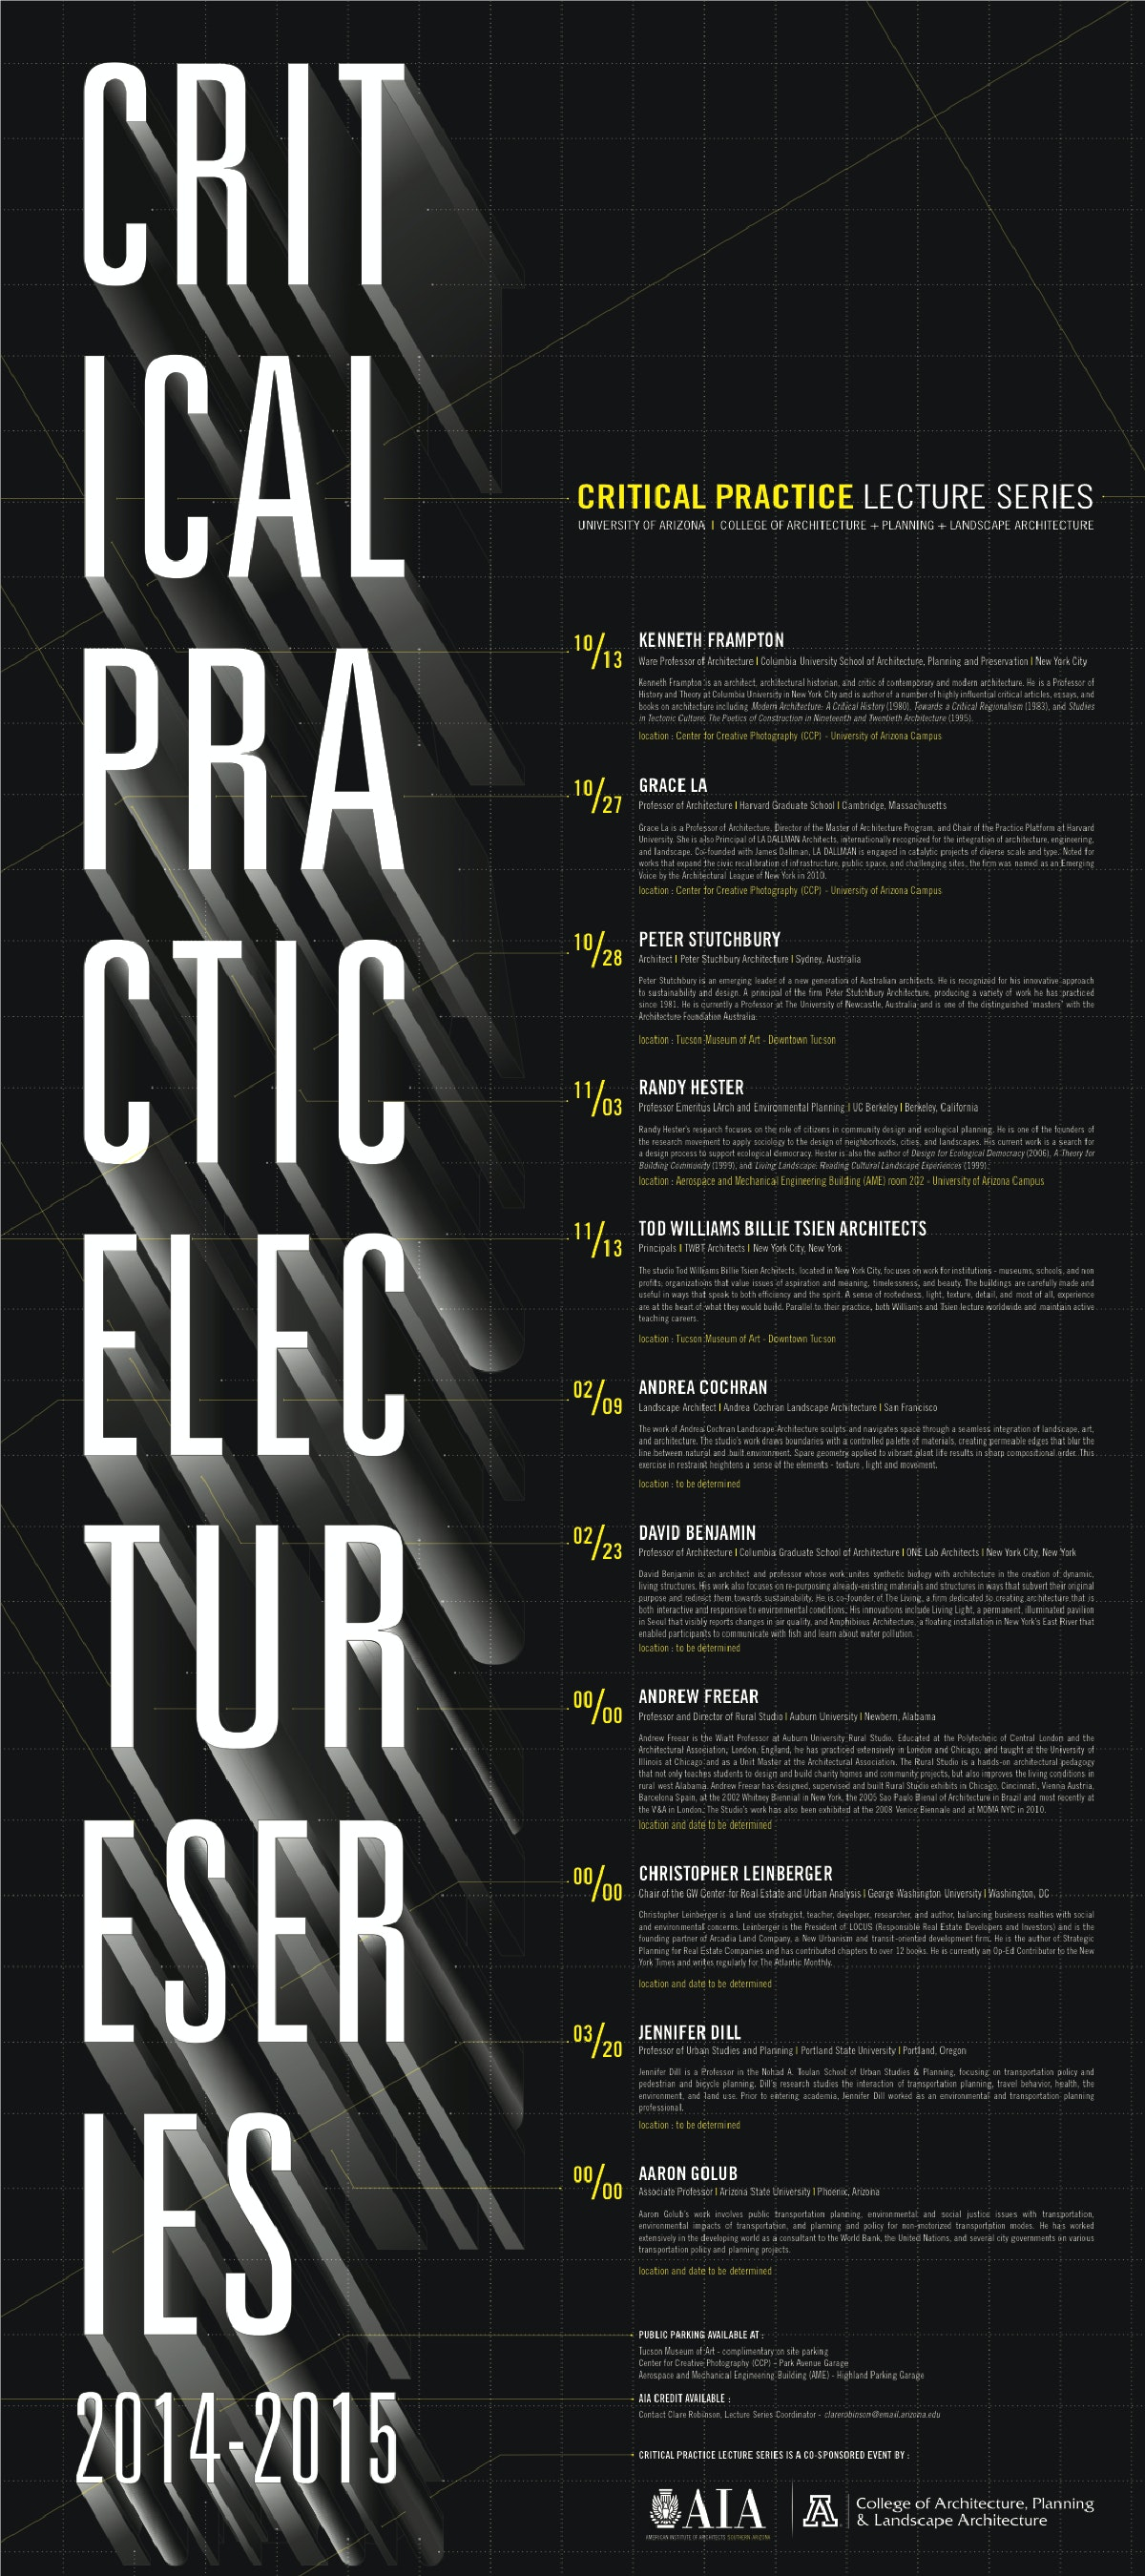 Critical Lecture Series 2014 15 At University Of Arizona College Of  Architecture + Planning +